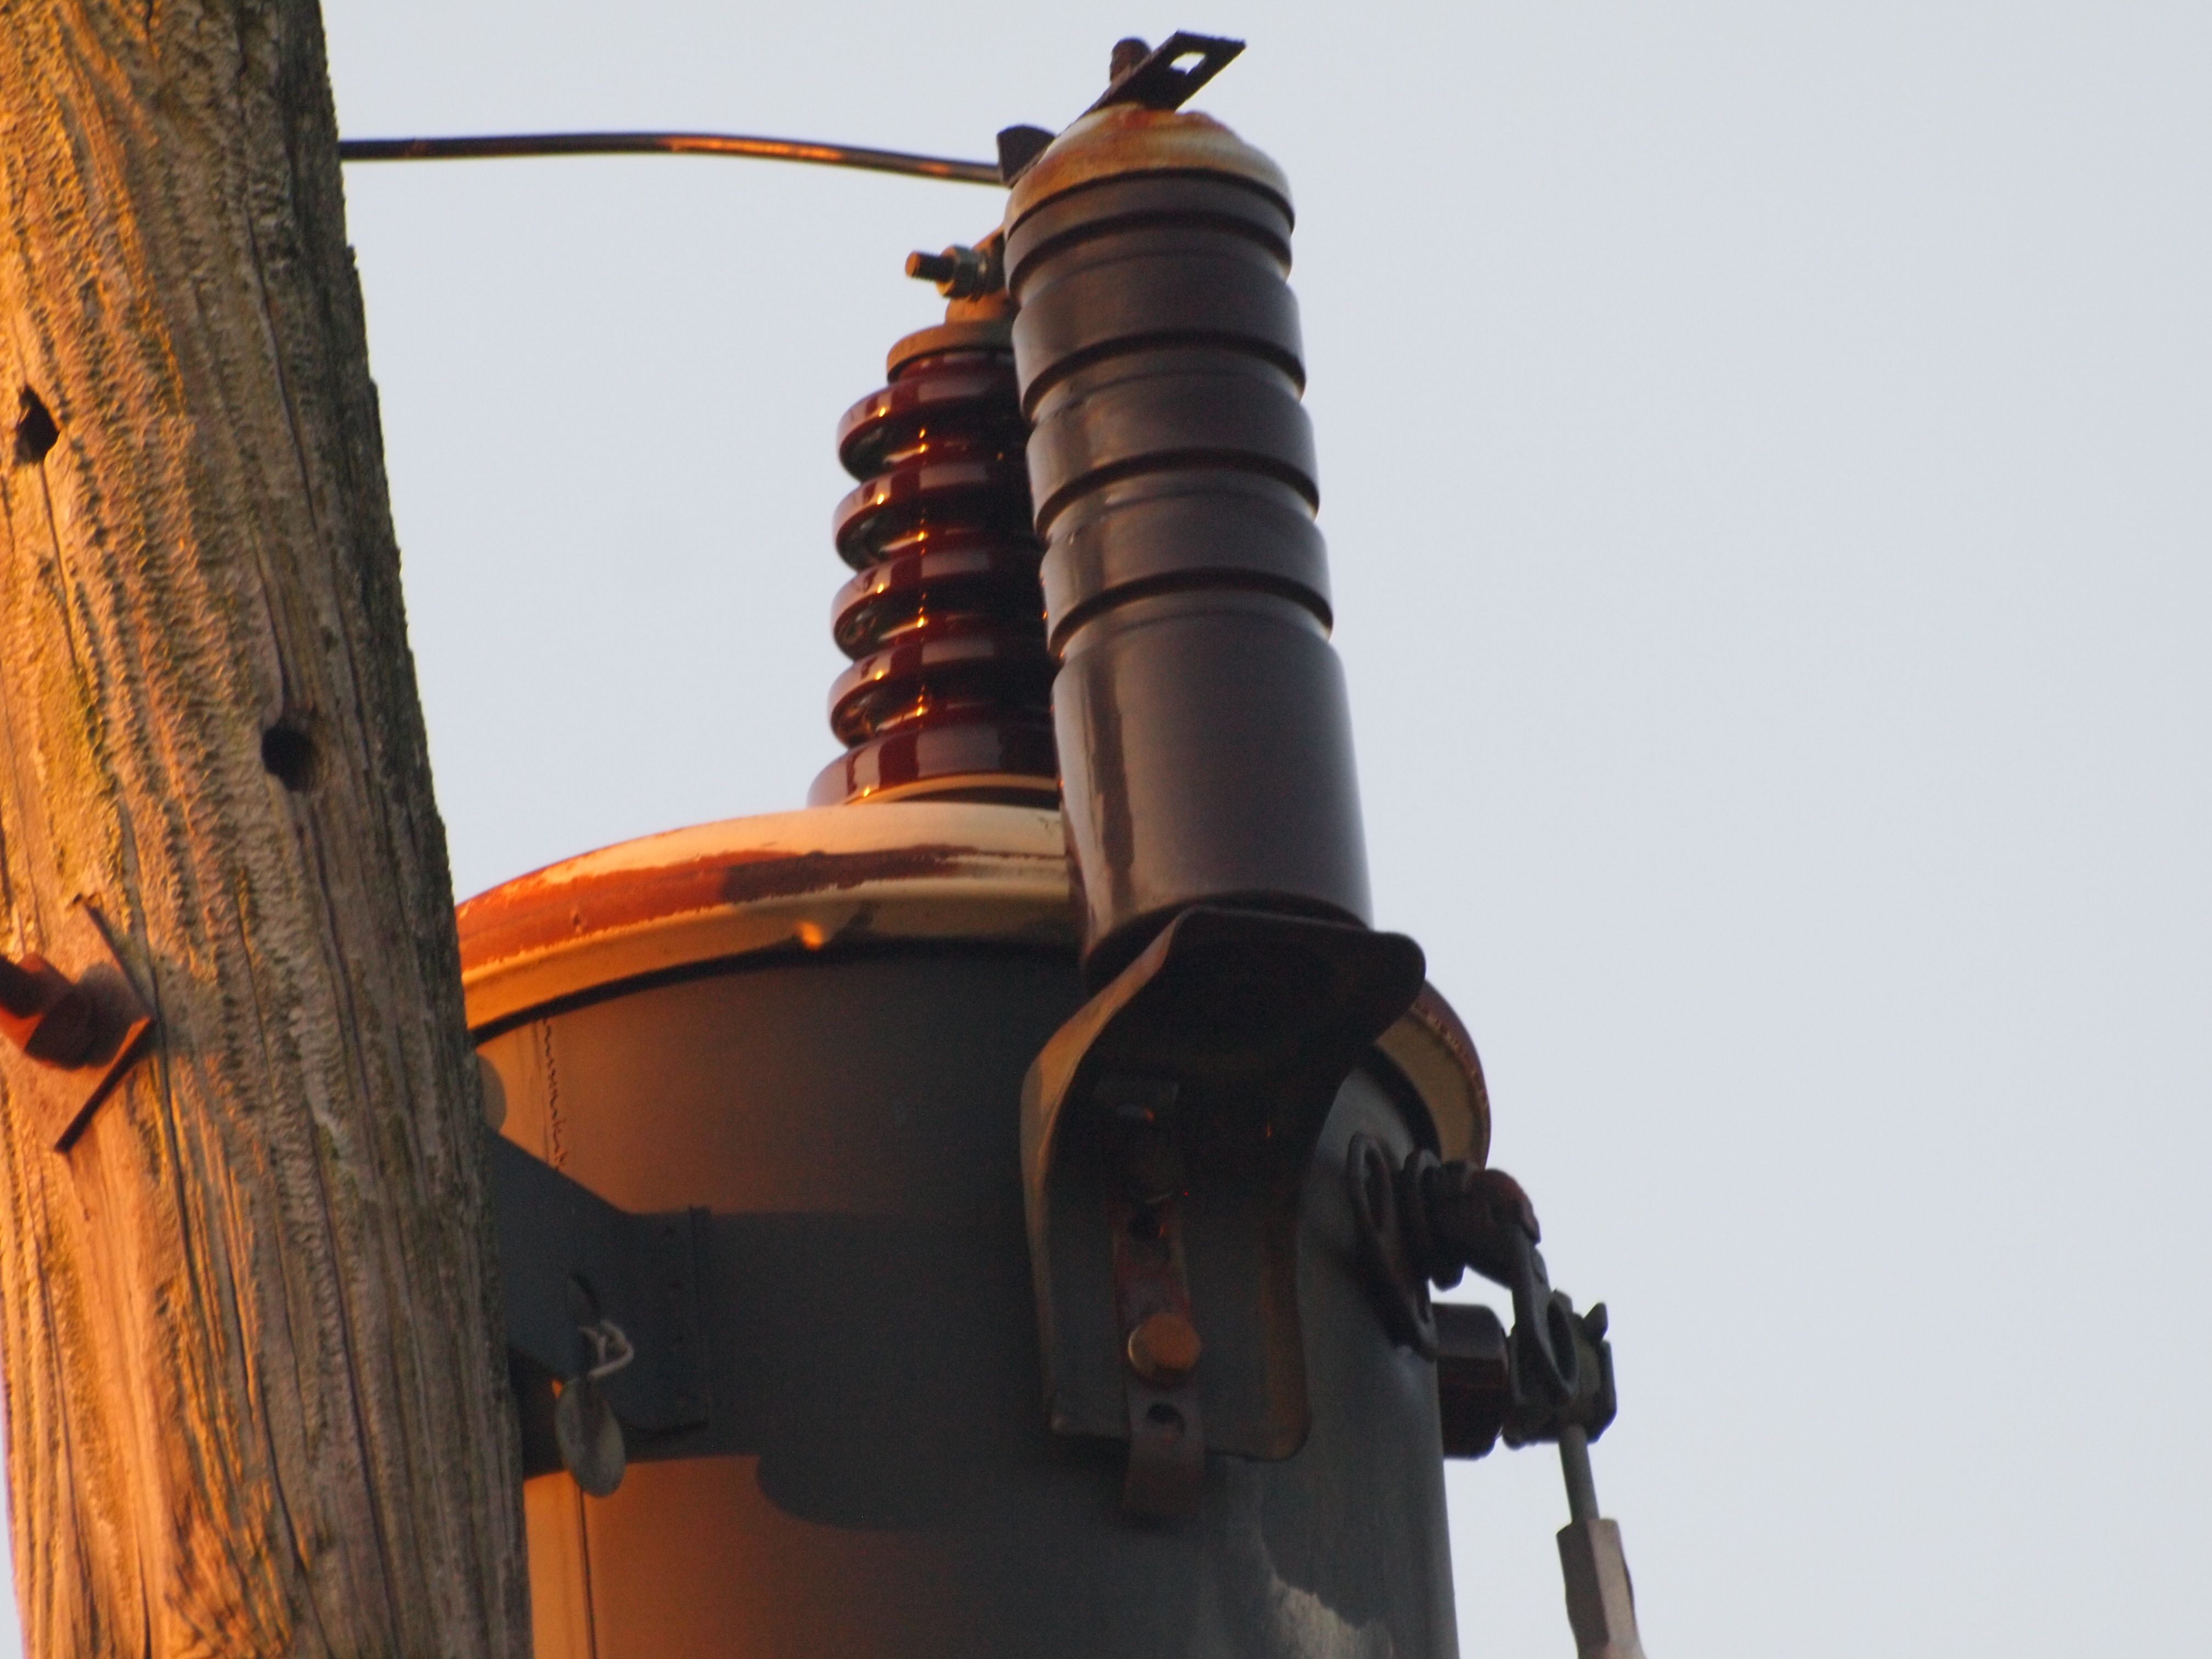 small resolution of our electric transformer the line men say this type is so old they rarely come across them any more it will fry a squirrel knocking the electric here